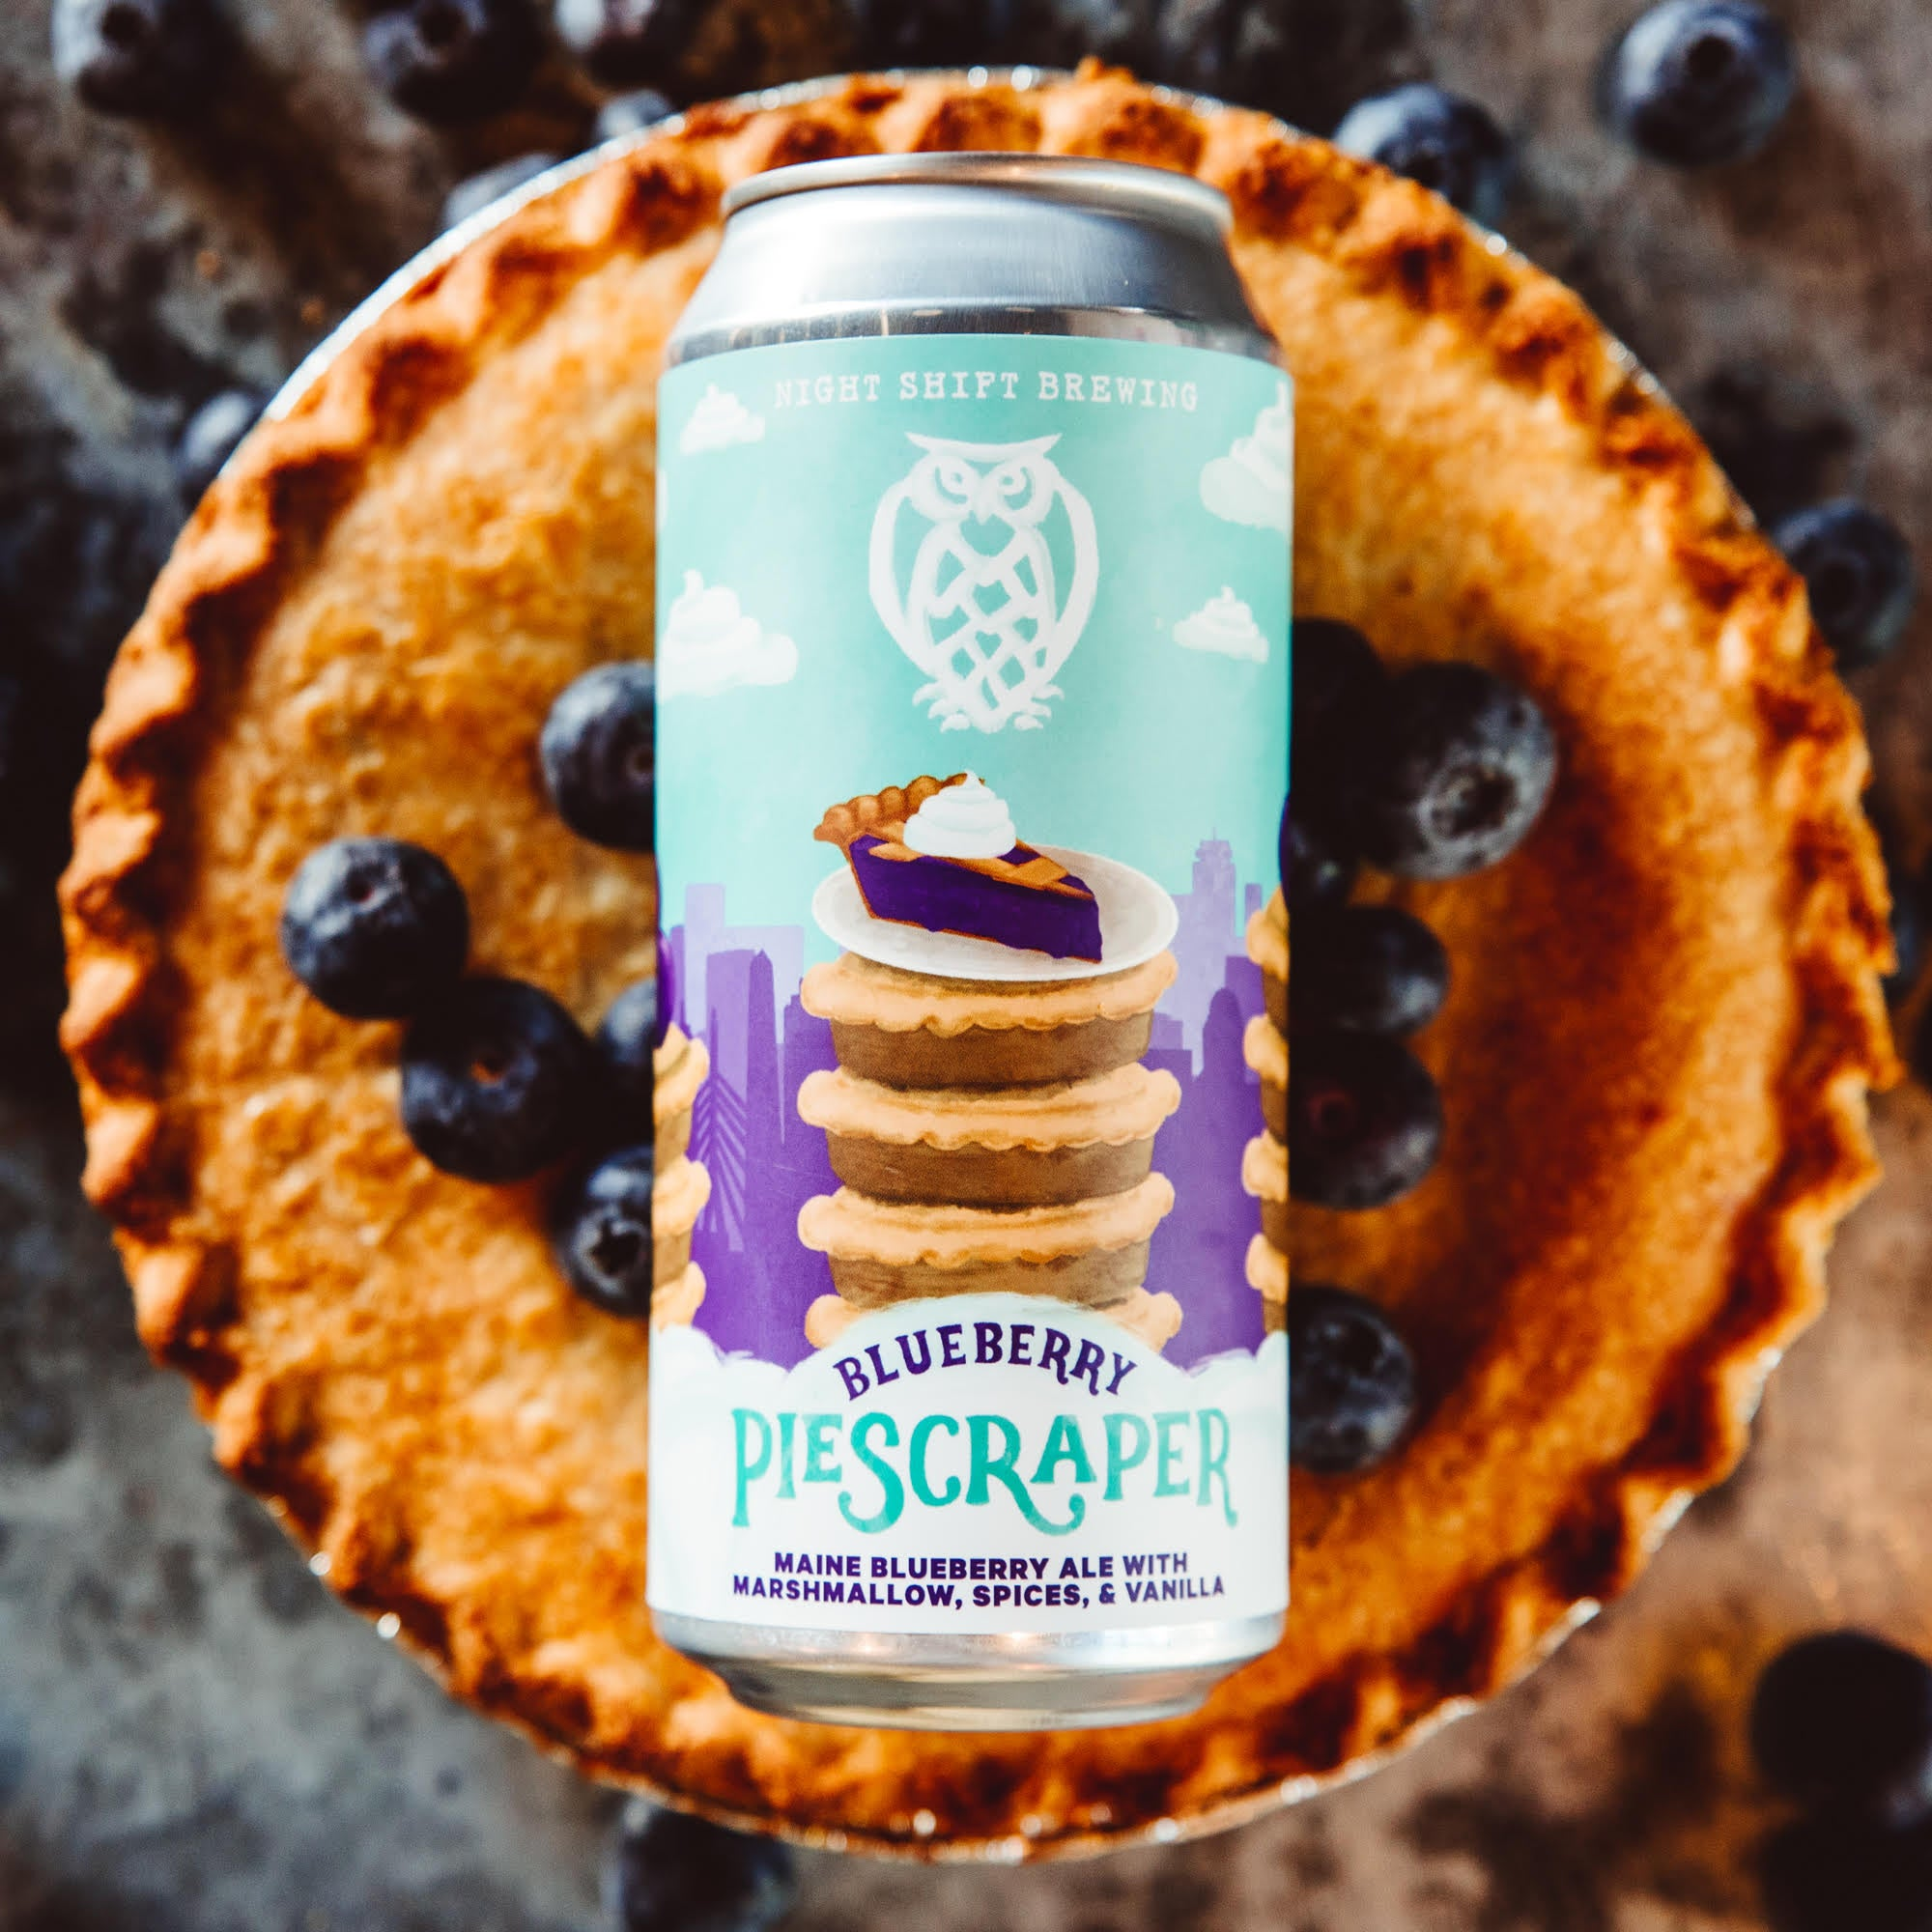 Blueberry Piescraper at Night Shift Brewing